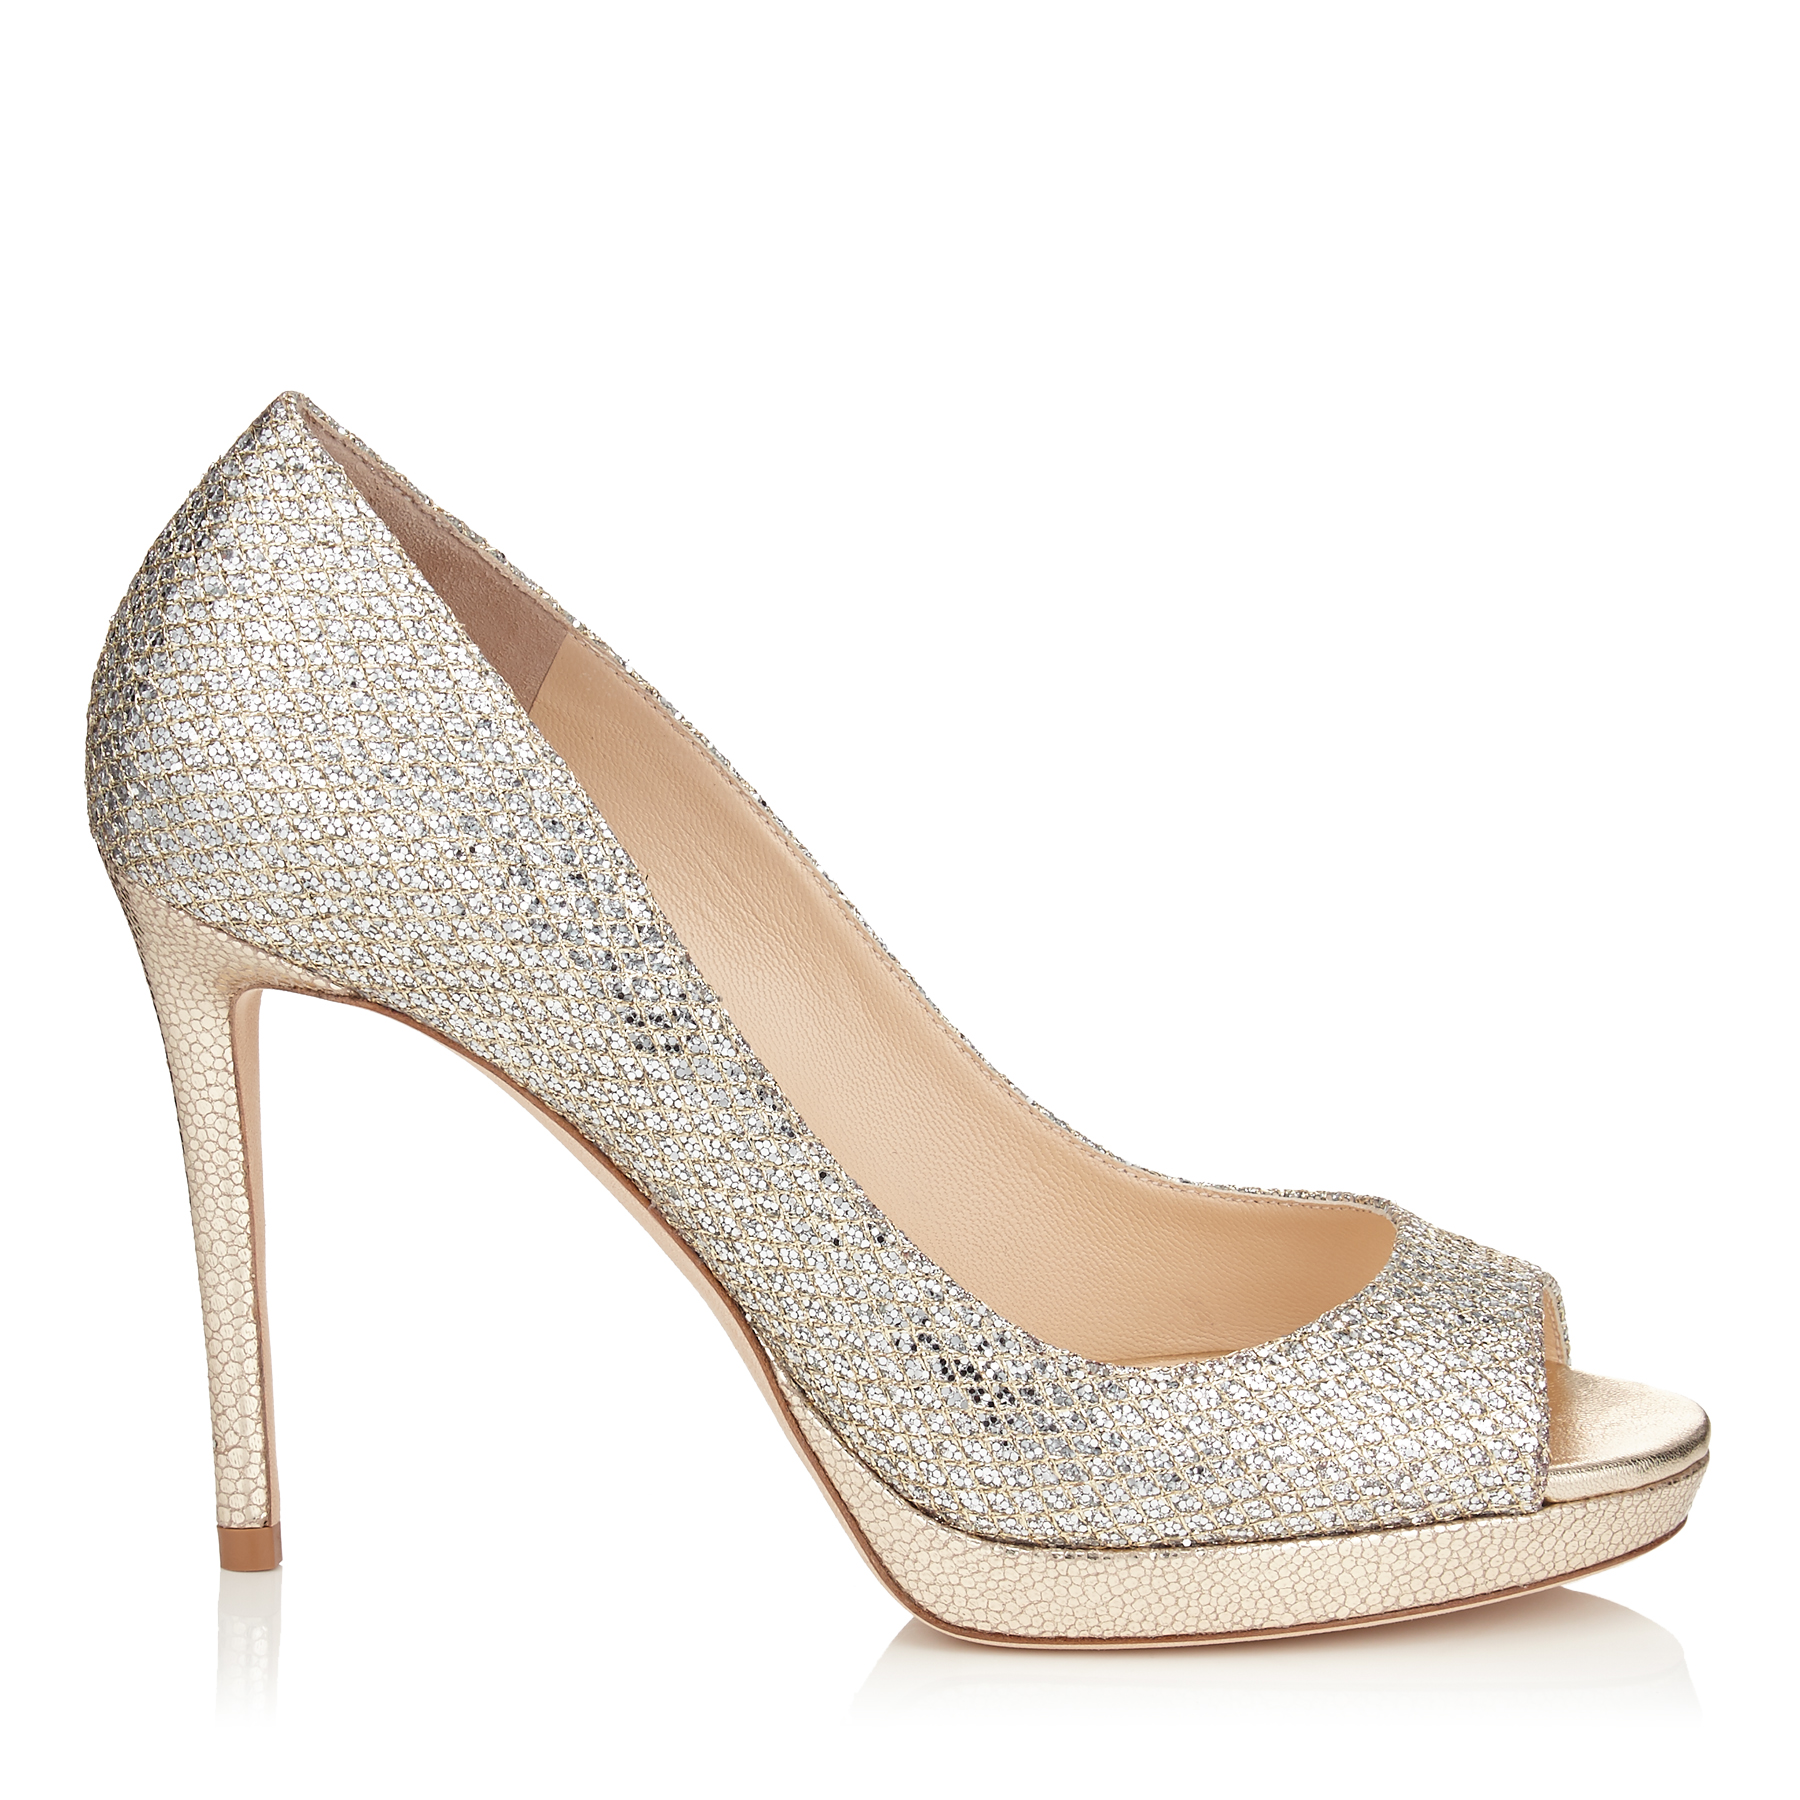 LUNA 100 Champagne Glitter Fabric Peep Toe Platform Pumps by Jimmy Choo